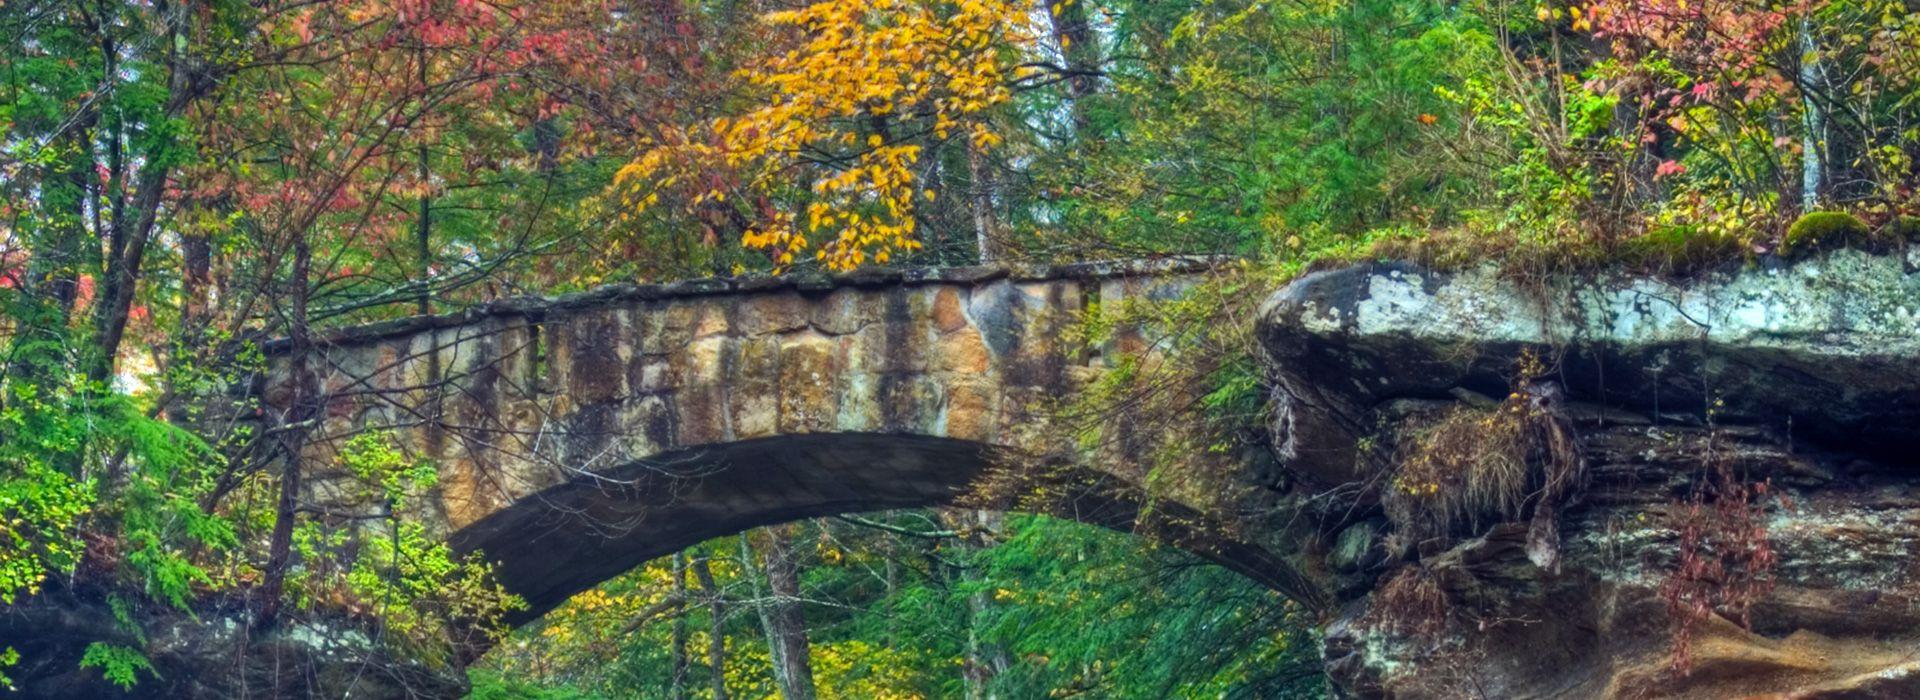 Attractions in Hocking Hills